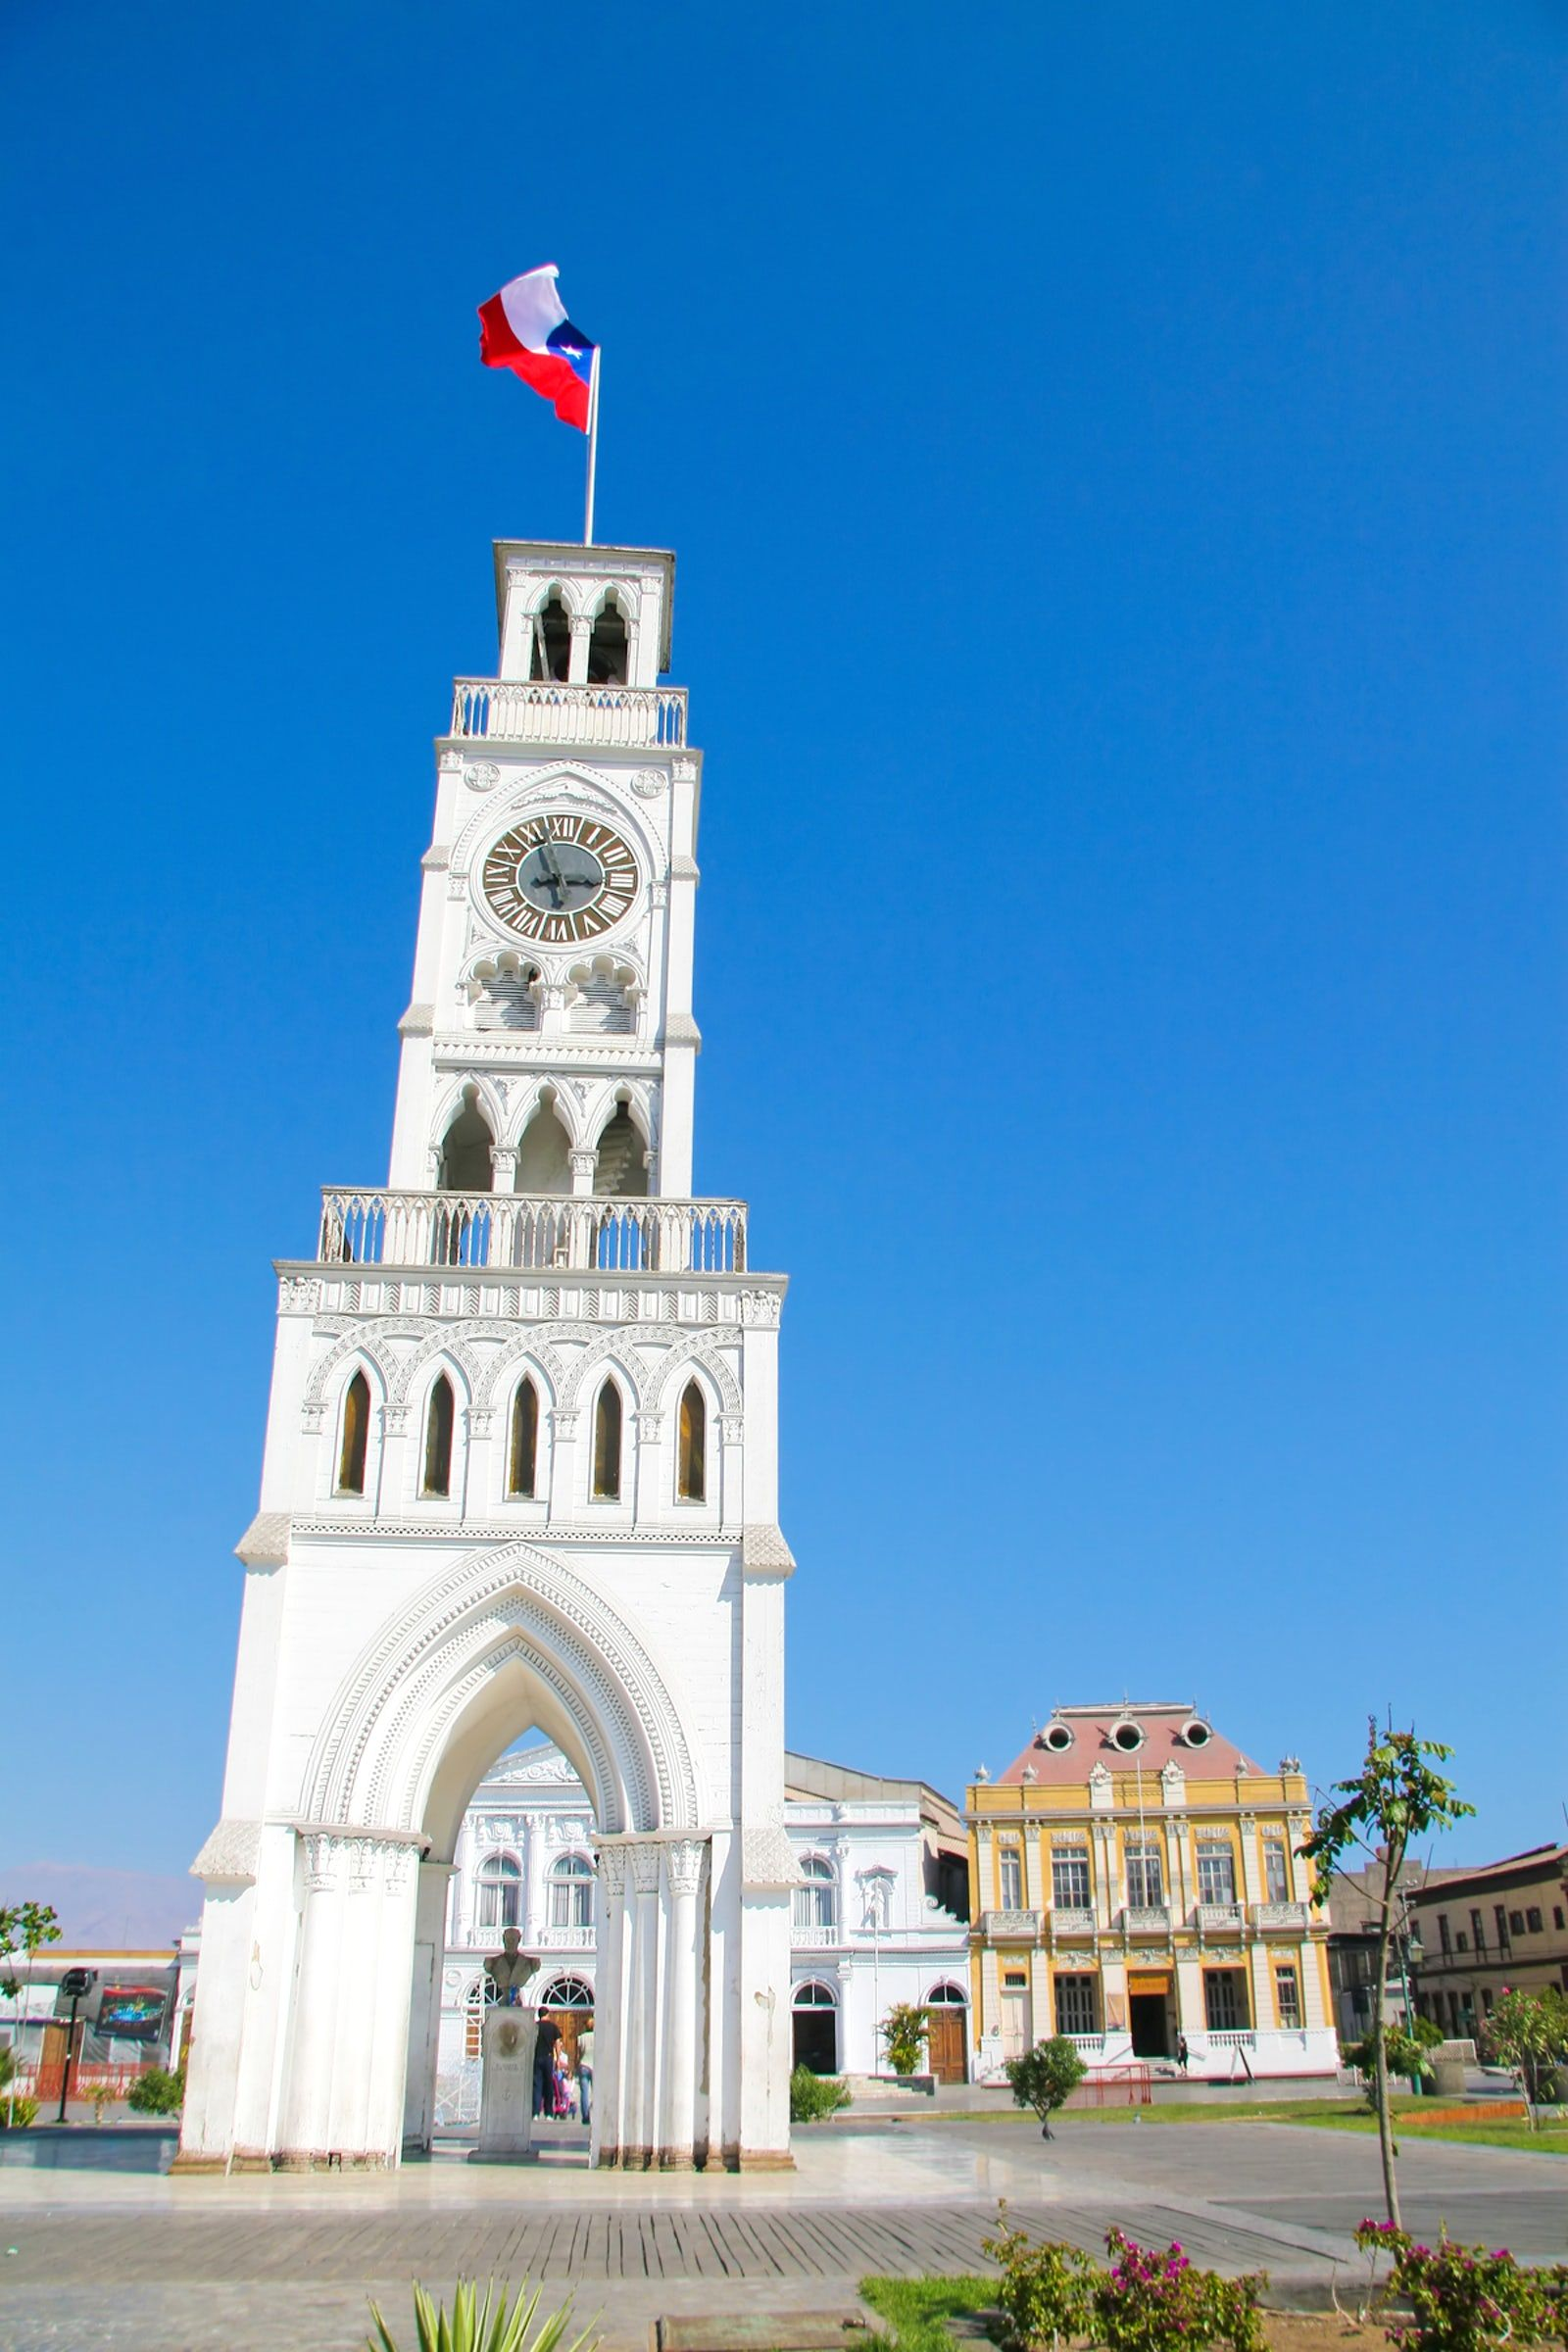 Visit Clock Tower Of Iquique Ferry Building San Francisco Clock Tower Chile